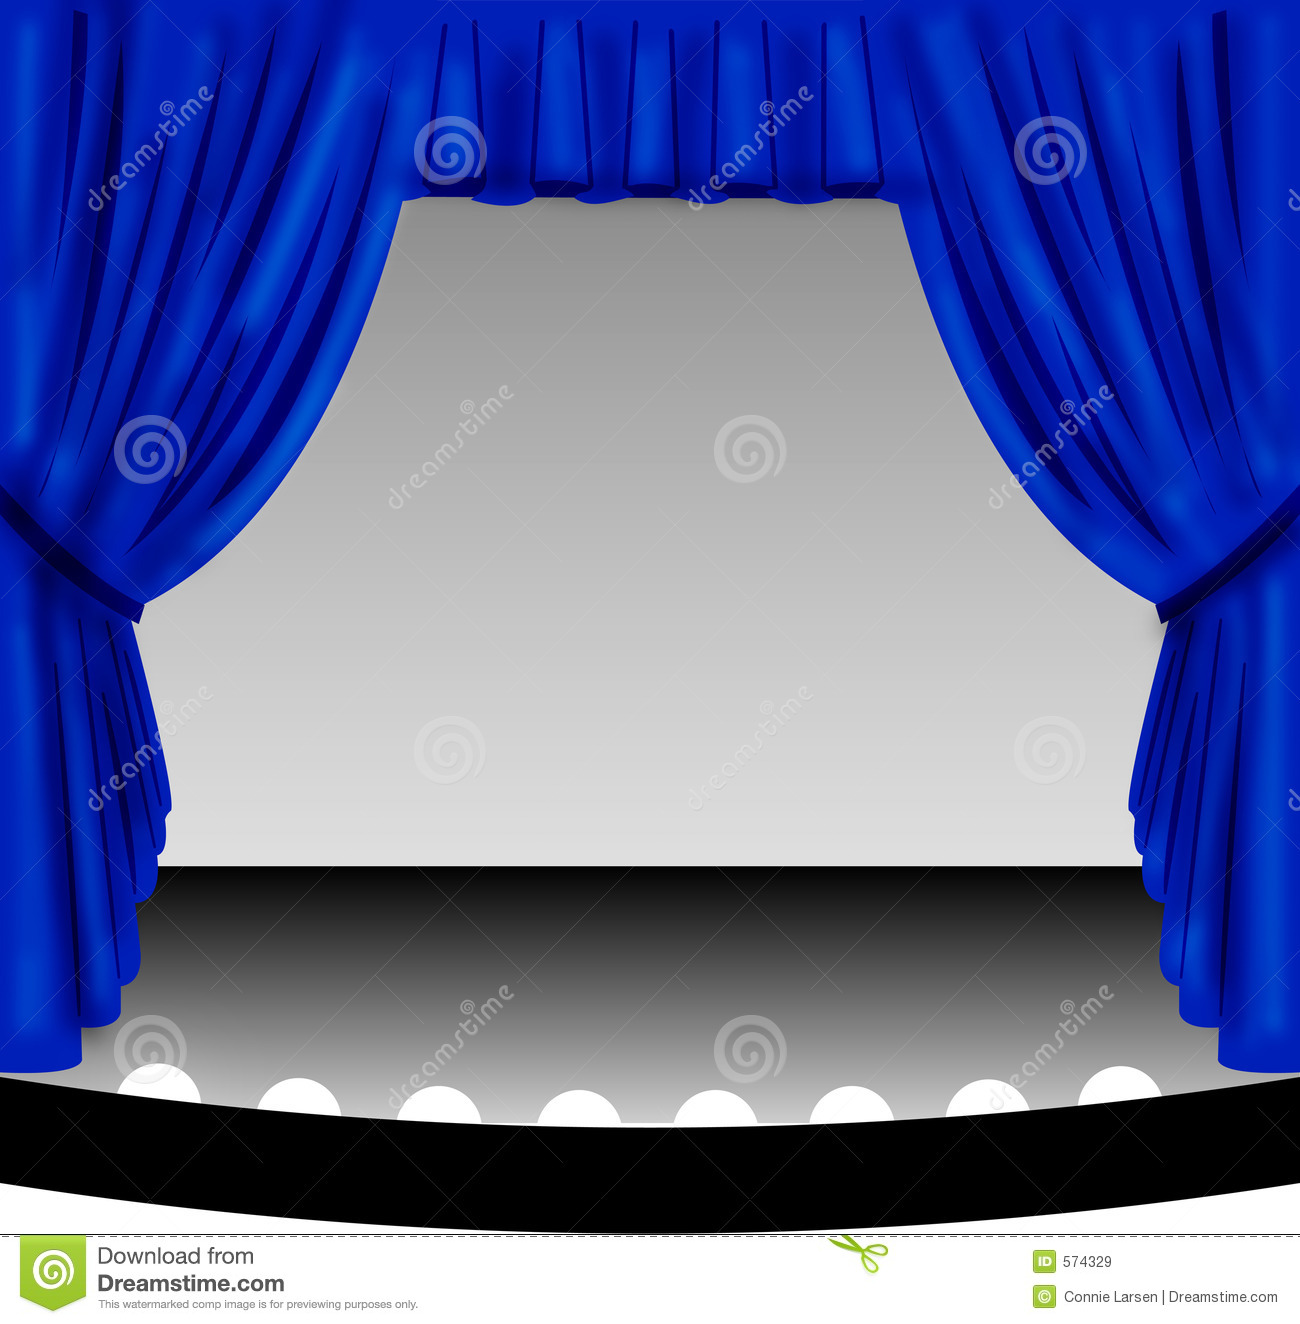 ... of an old-fashioned theater stage with a draped blue fabric curtain